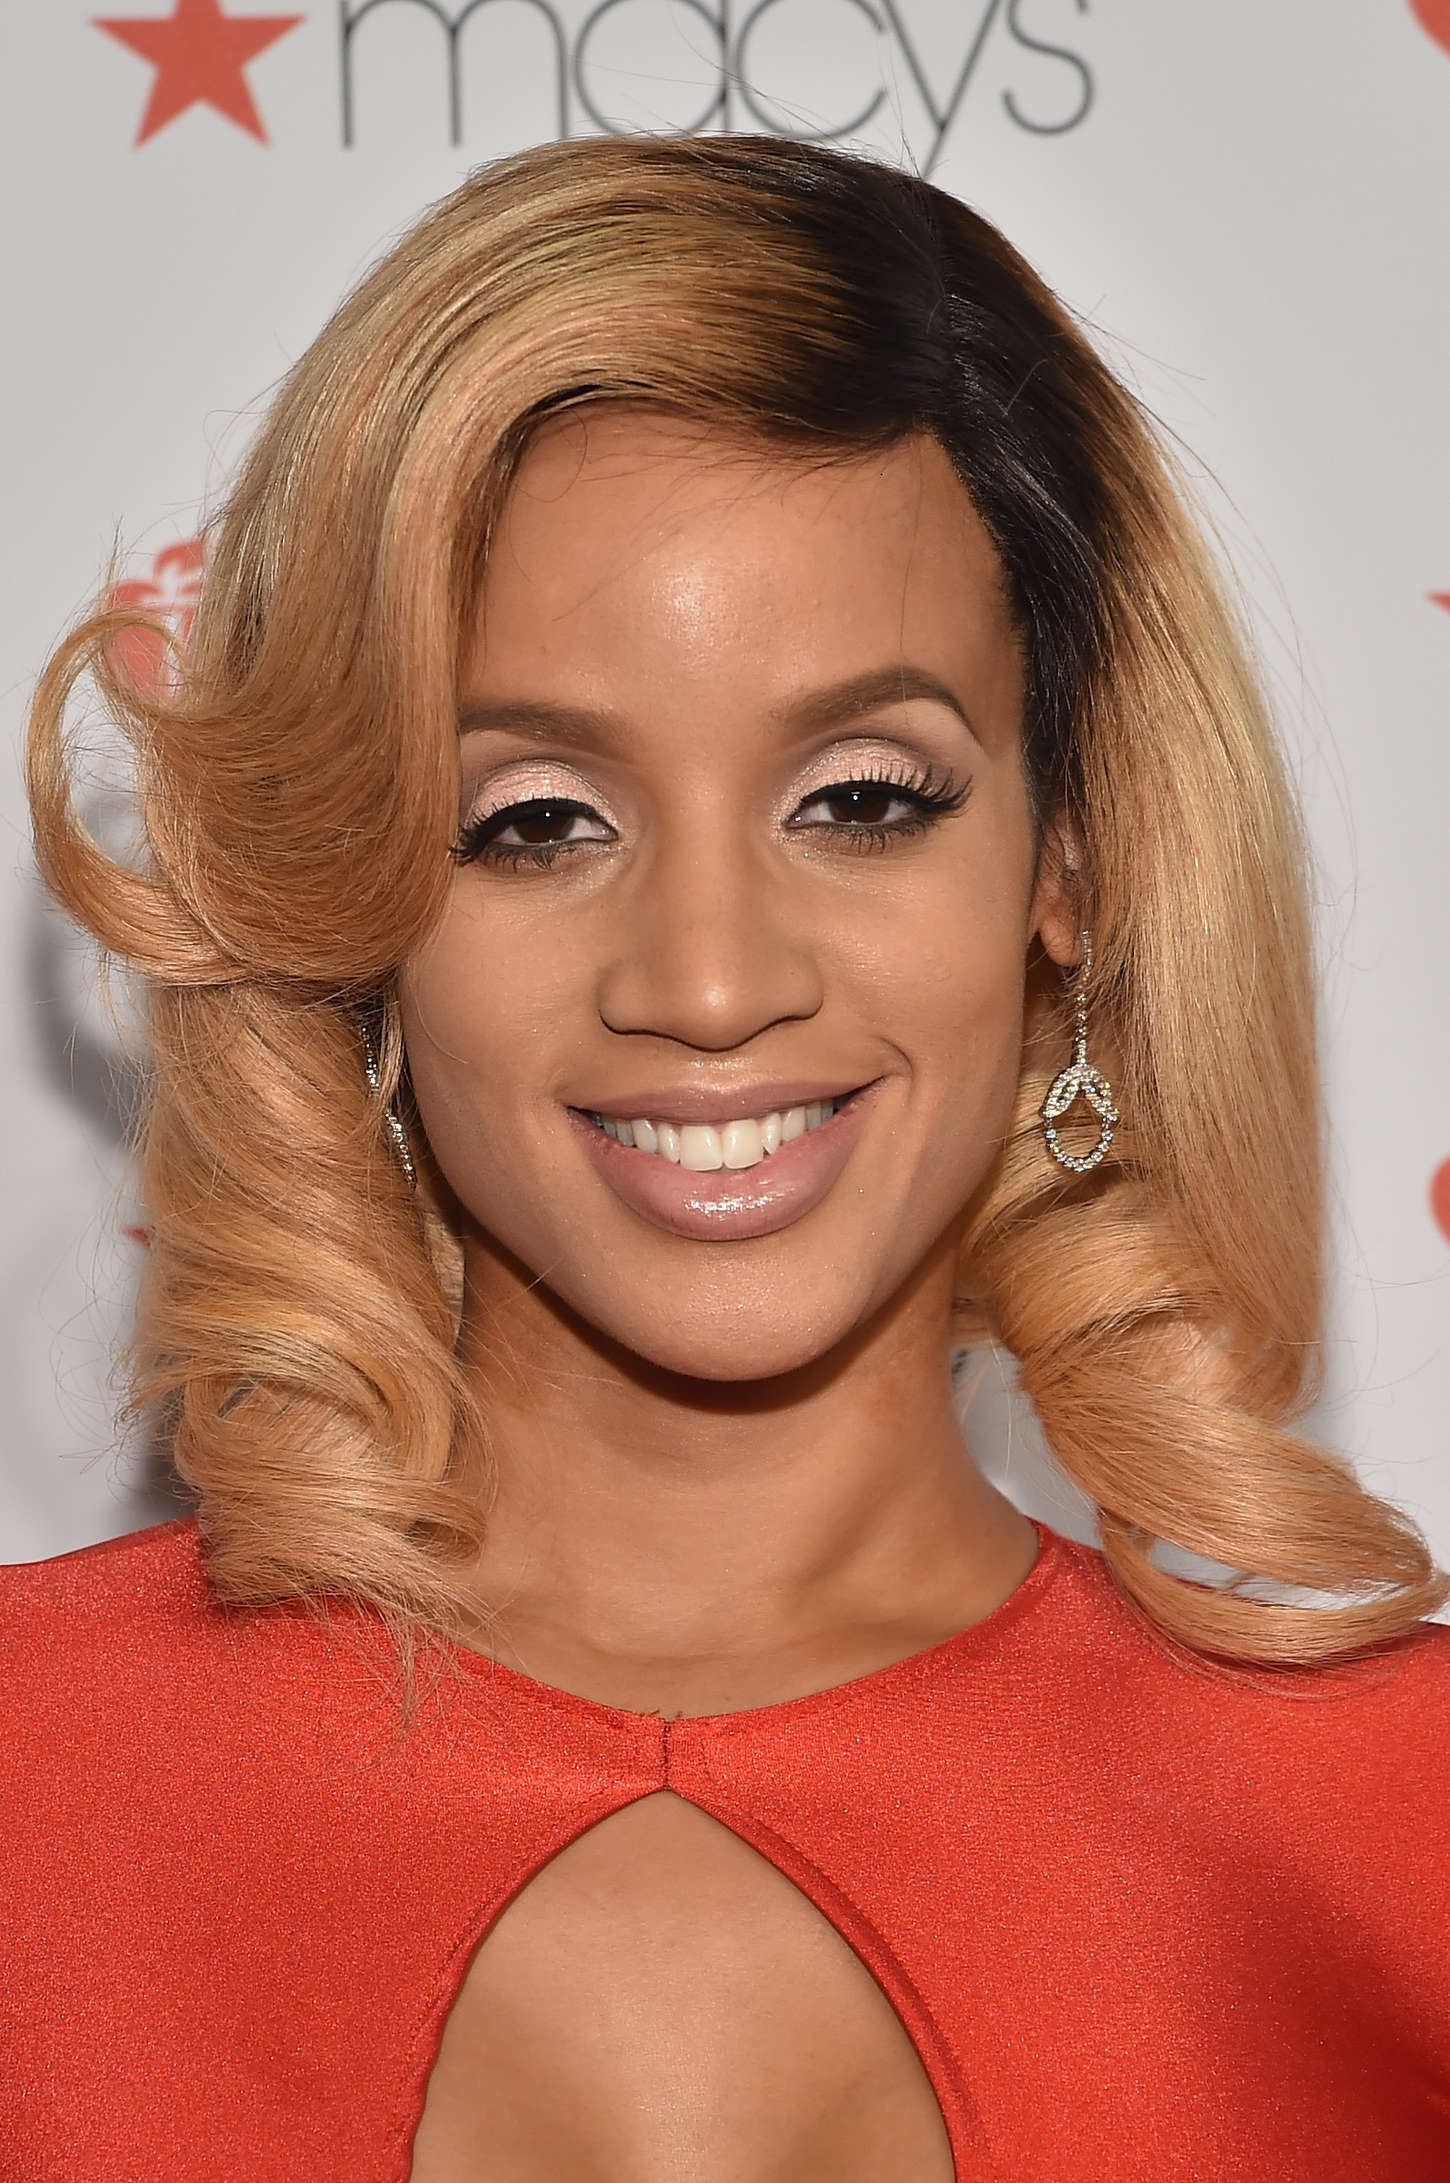 Dascha Polanco Go Red For Women Red Dress Collection in New York